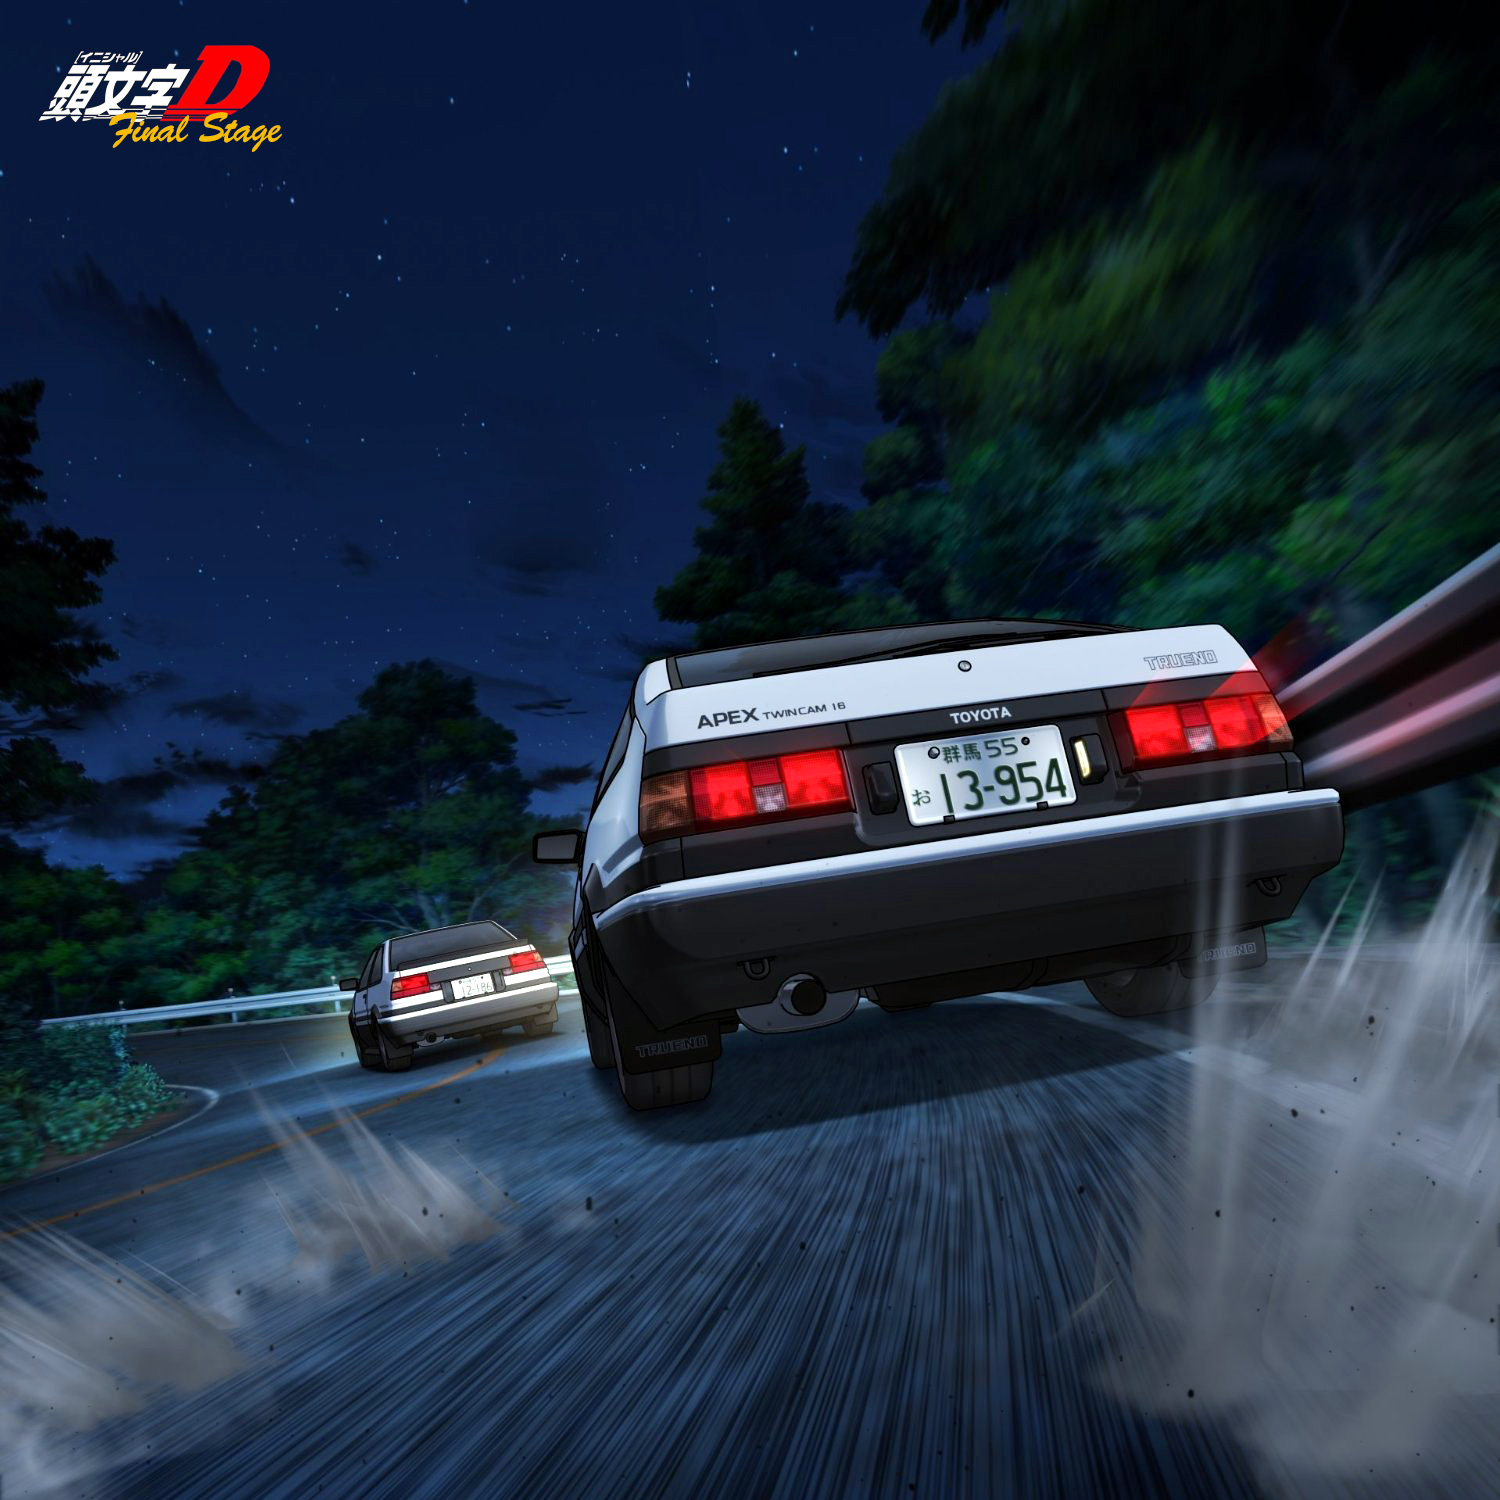 initial d world discussion board forums initial d final stage wallpapers. Black Bedroom Furniture Sets. Home Design Ideas